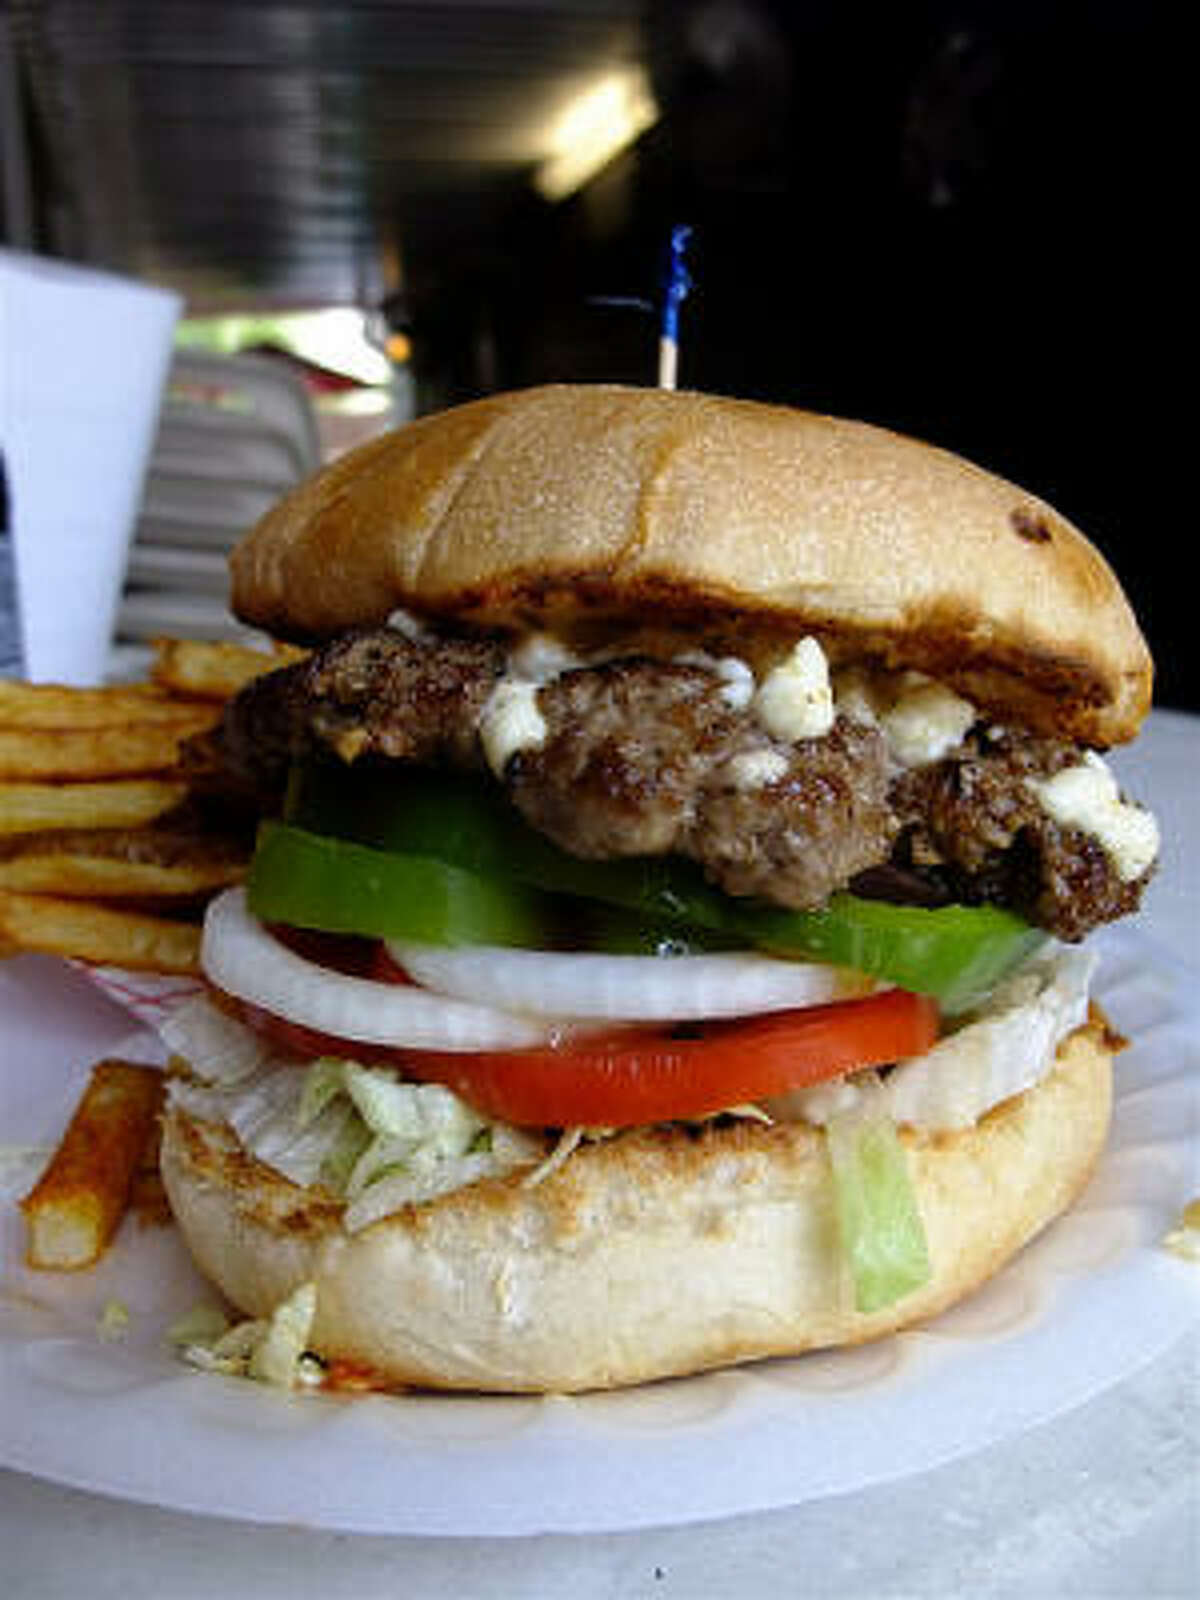 The Greek Burger at Hubcap Grill: with its feta, green pepper, tomato, onion, Kalamata olives & lettuce, it's like eating a Greek salad on a burger. An oregano-laced mayo sauce makes it even better.